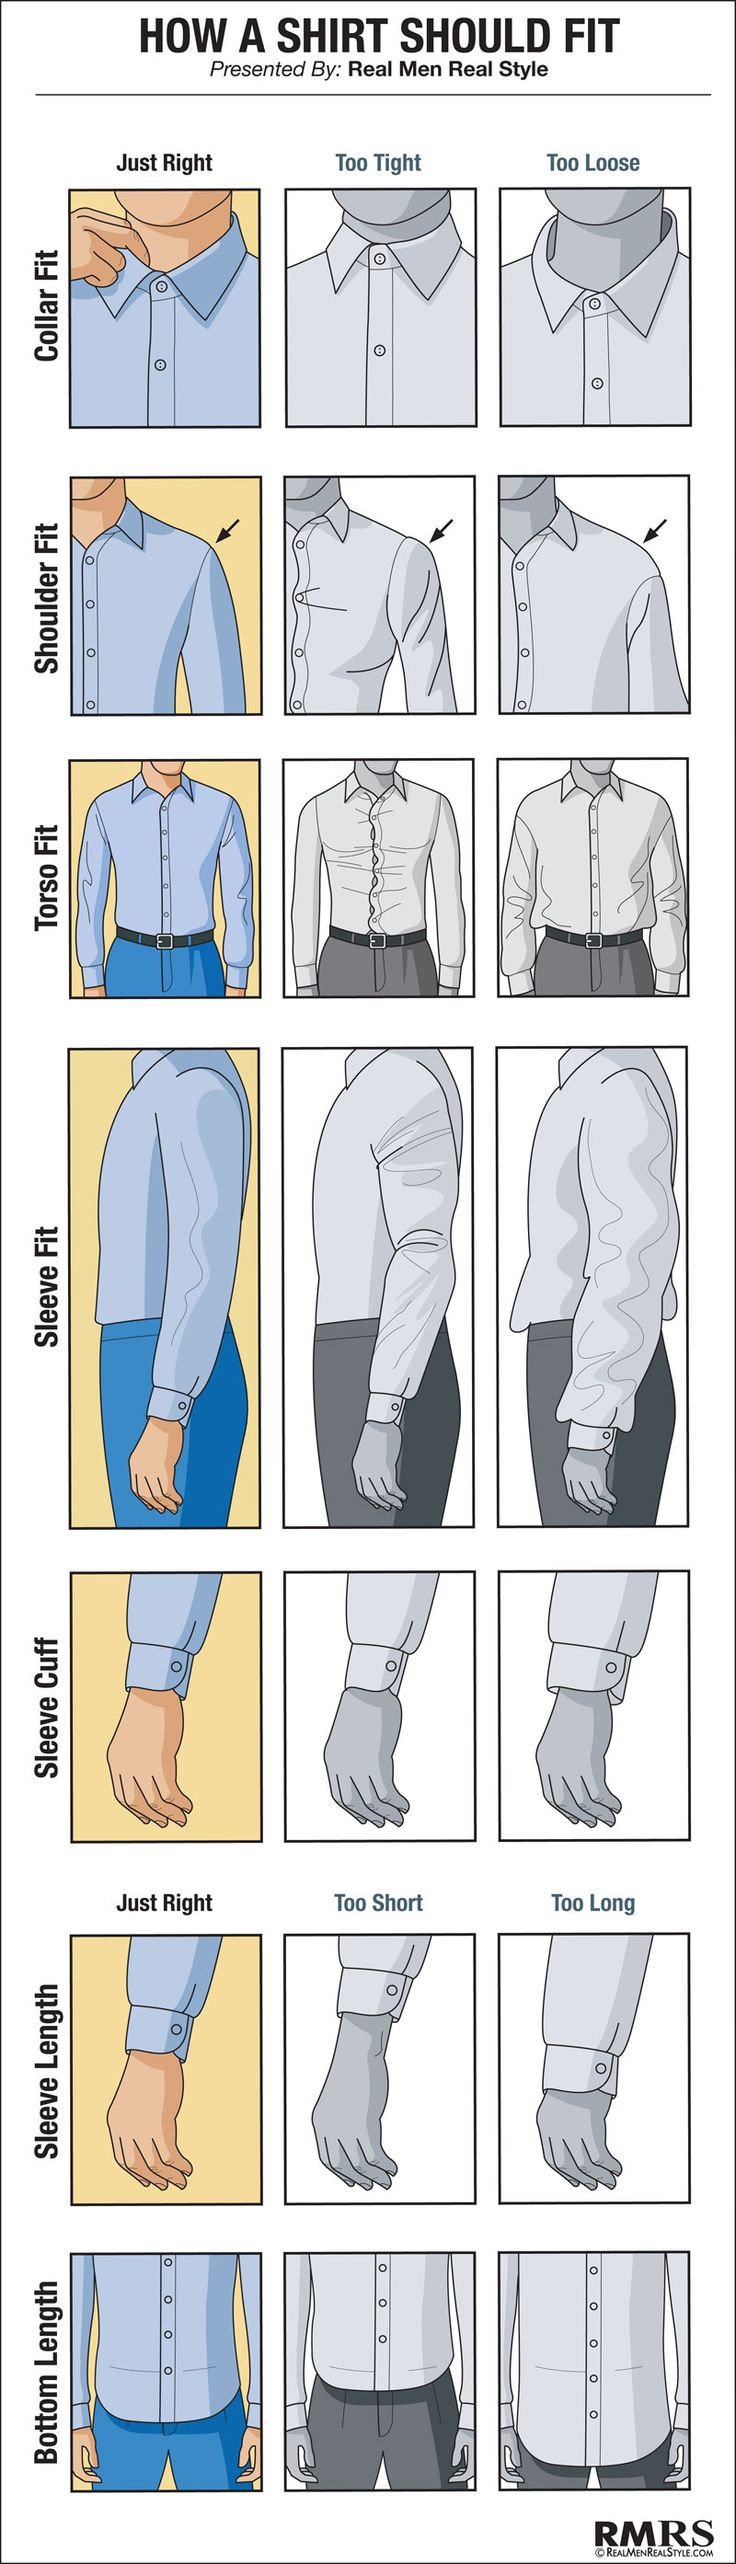 how a shirt should fit, shirt fit guide